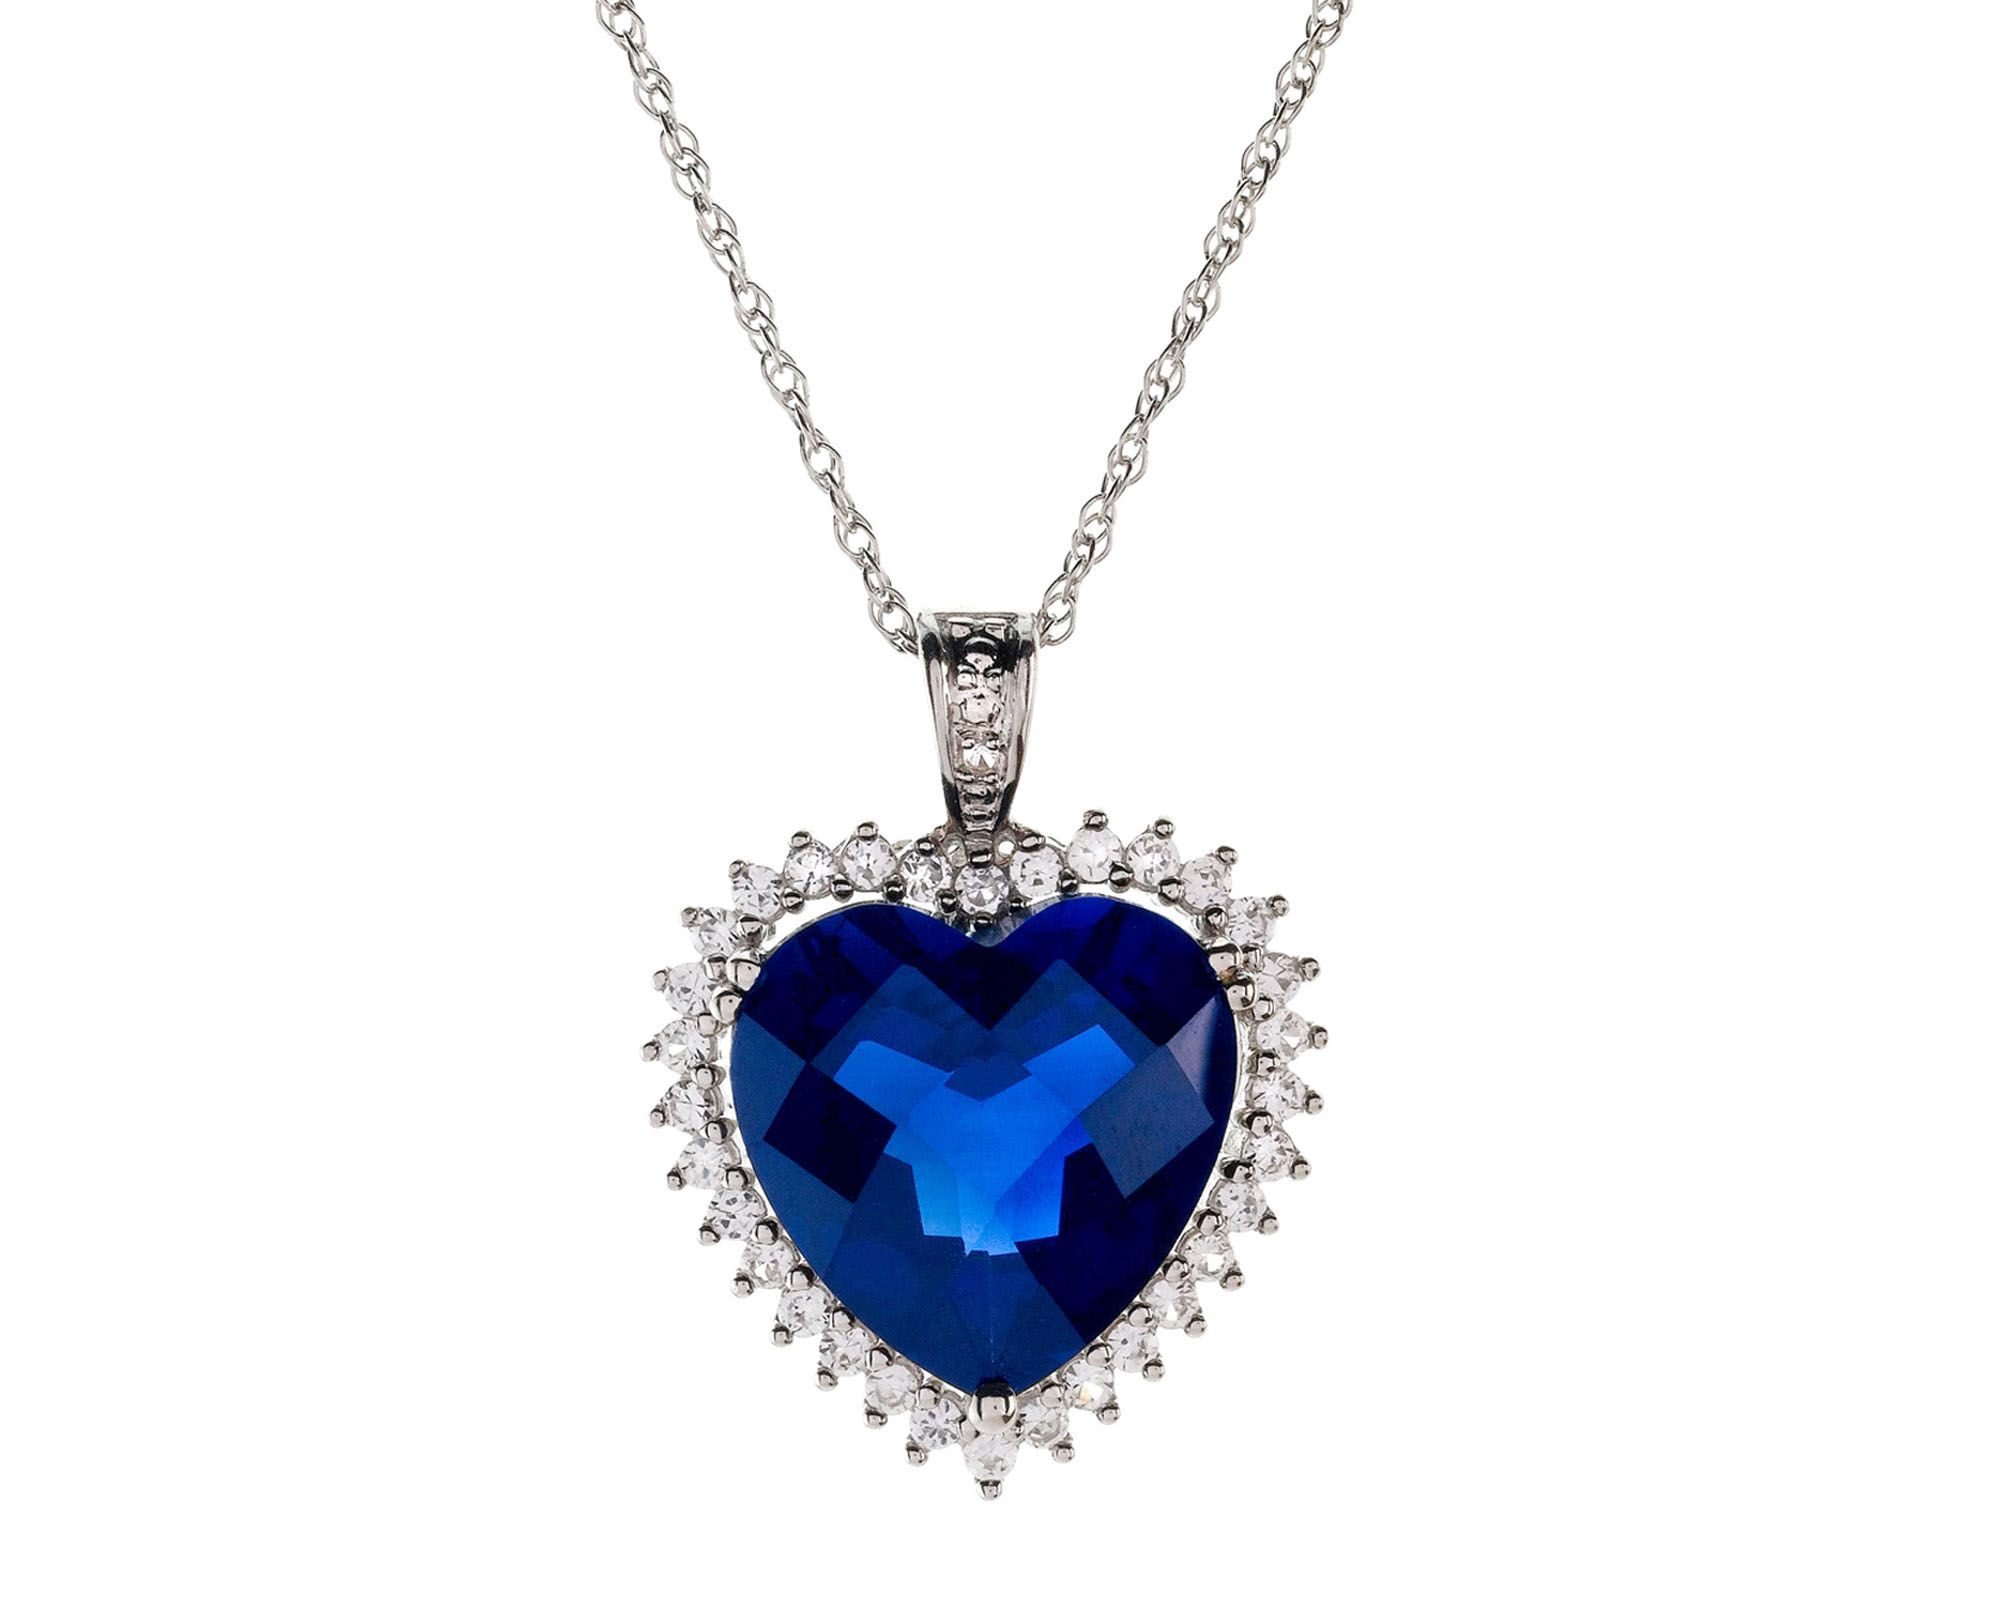 Lab-Created Blue & White Sapphire Heart Pendant Necklace